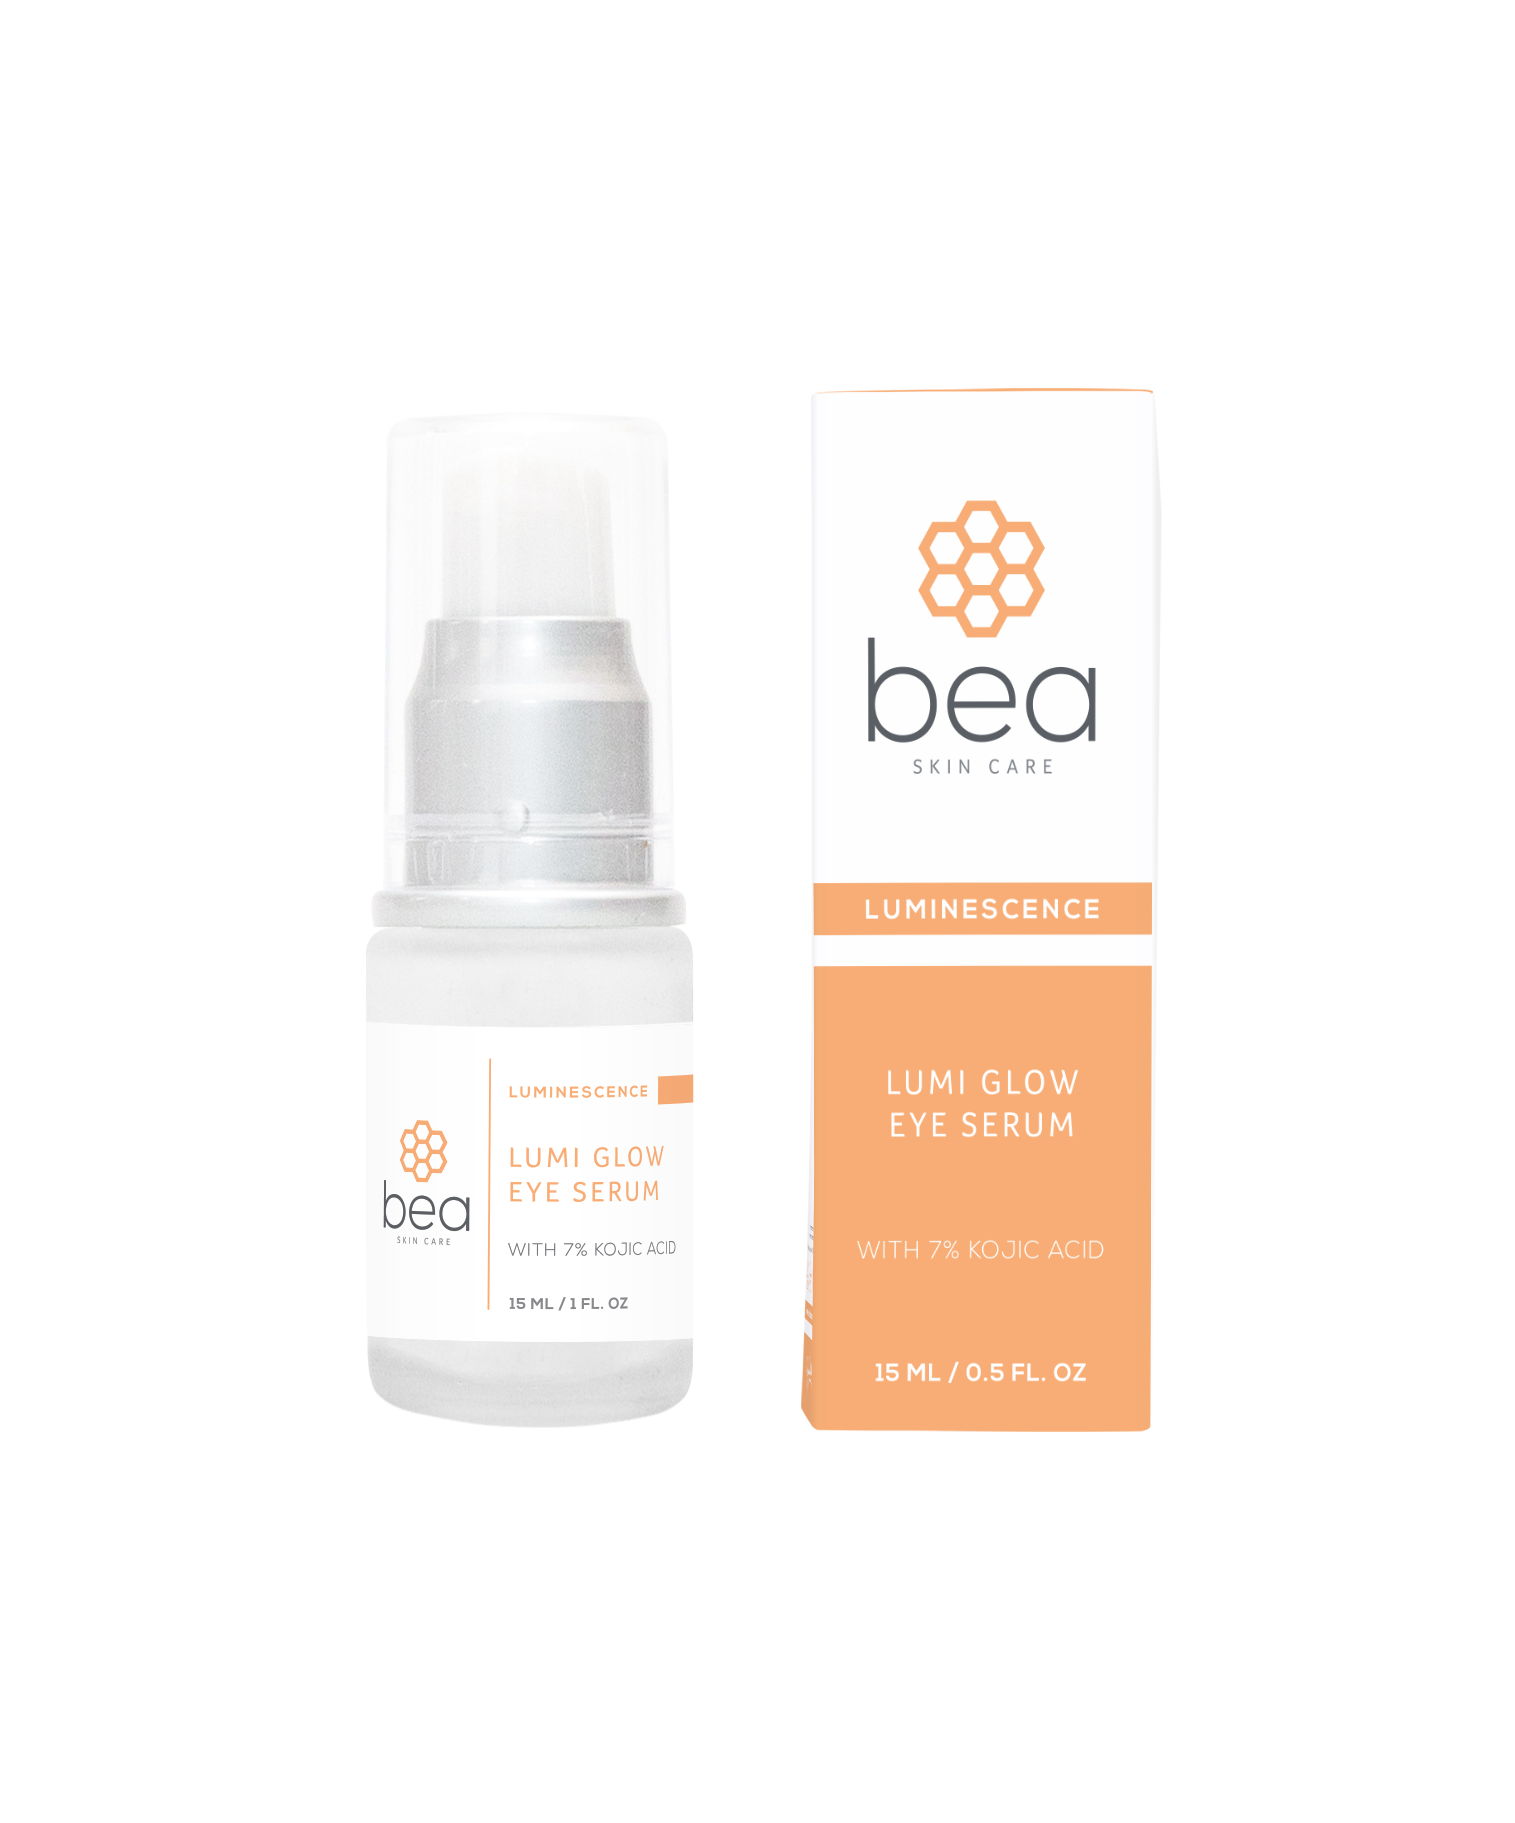 Lumi Glow Eye Serum - 15ml